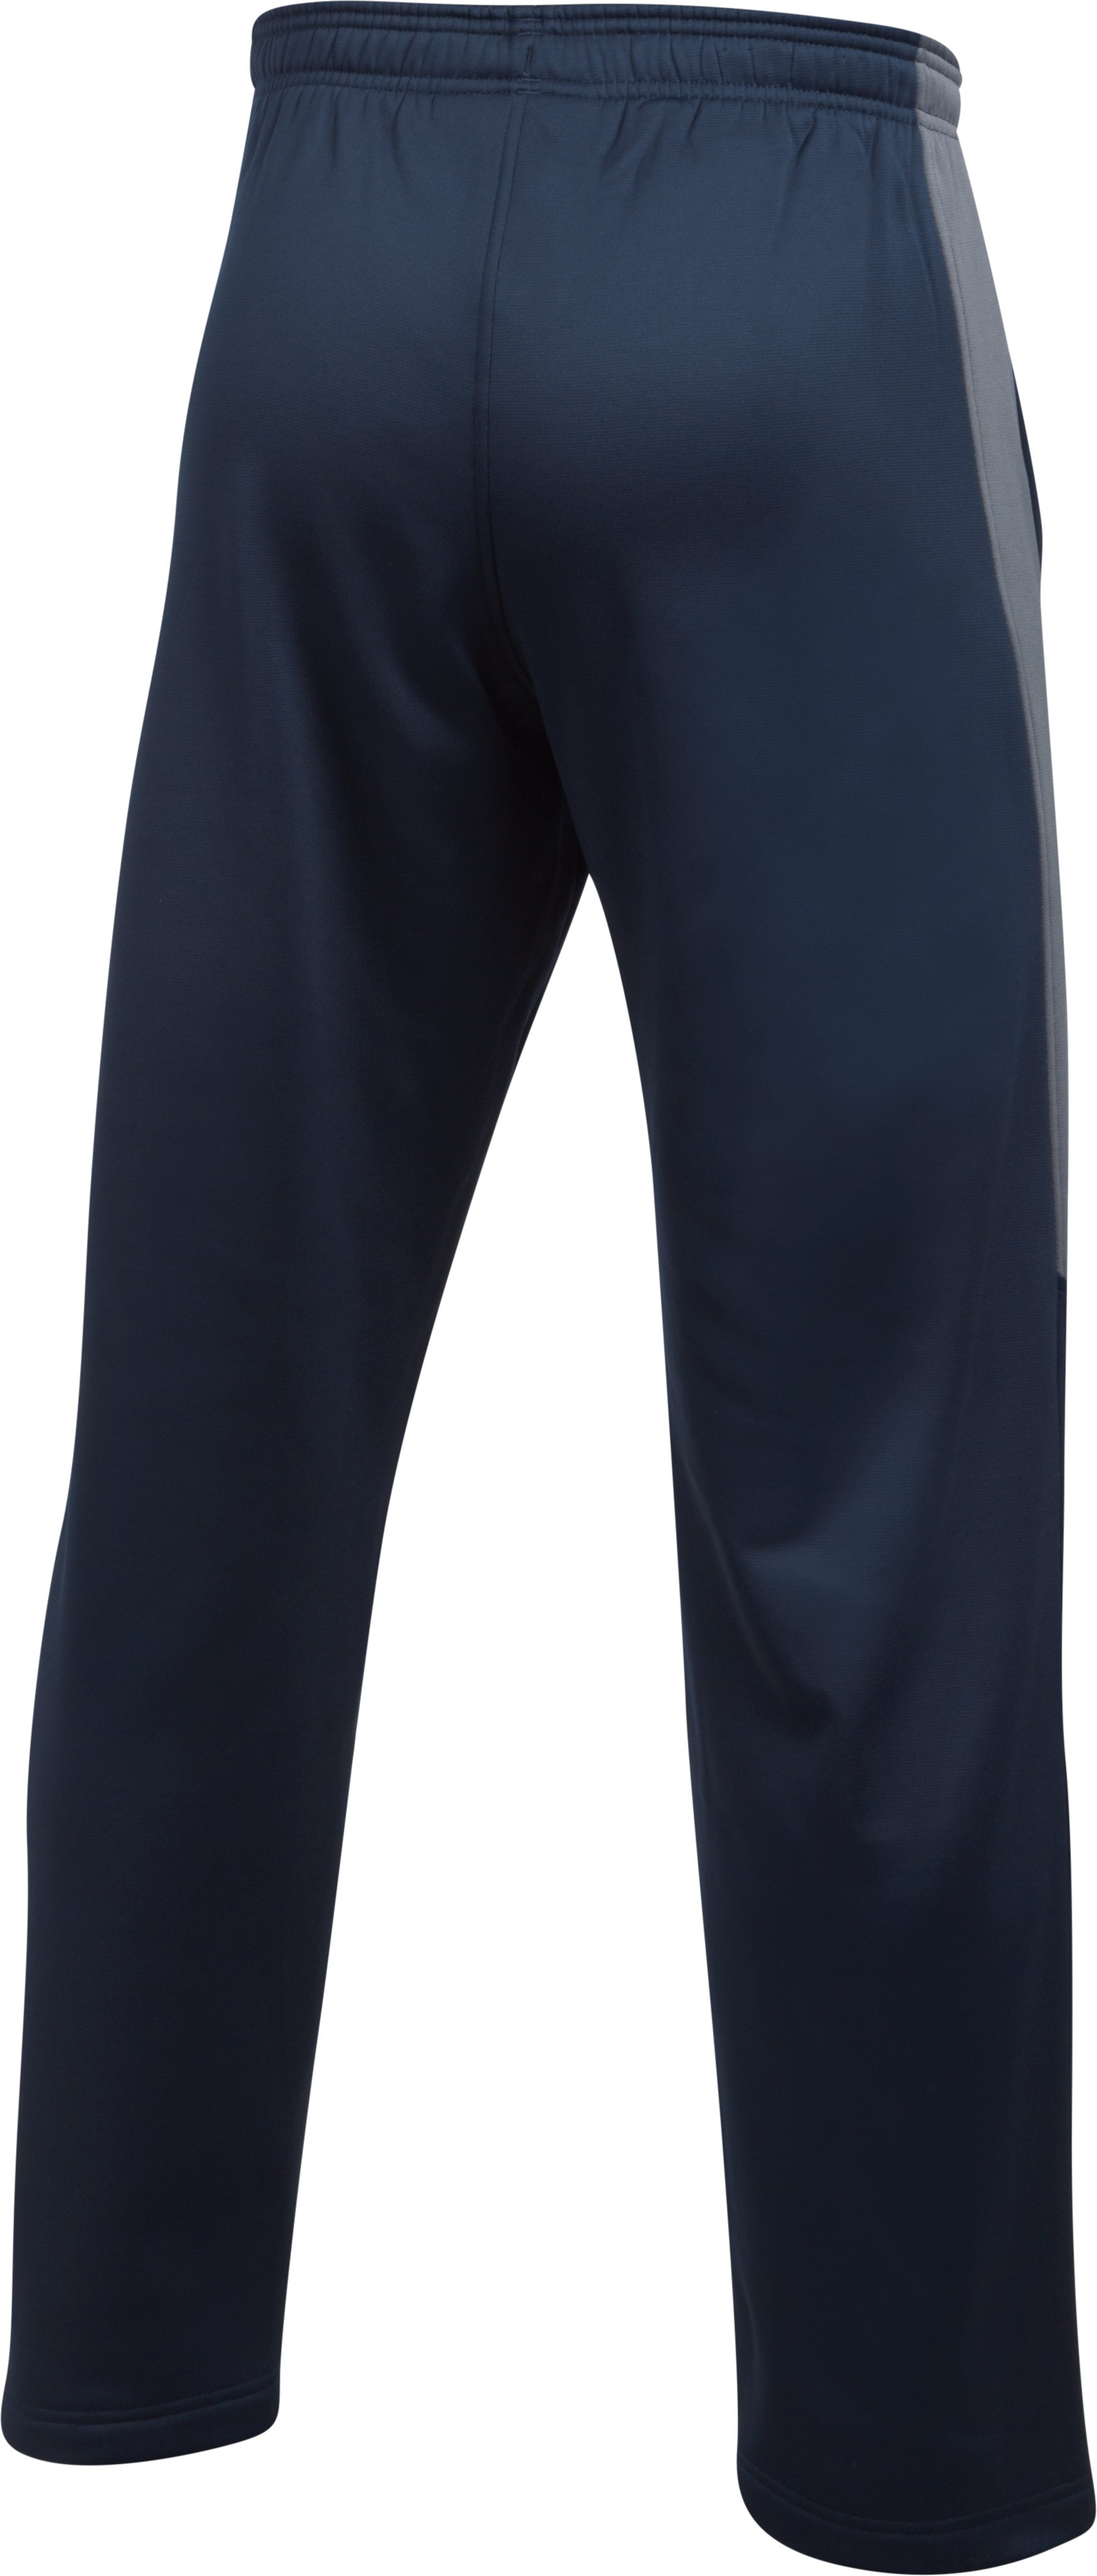 Men's Armour Fleece® Lightweight Pants, Midnight Navy,